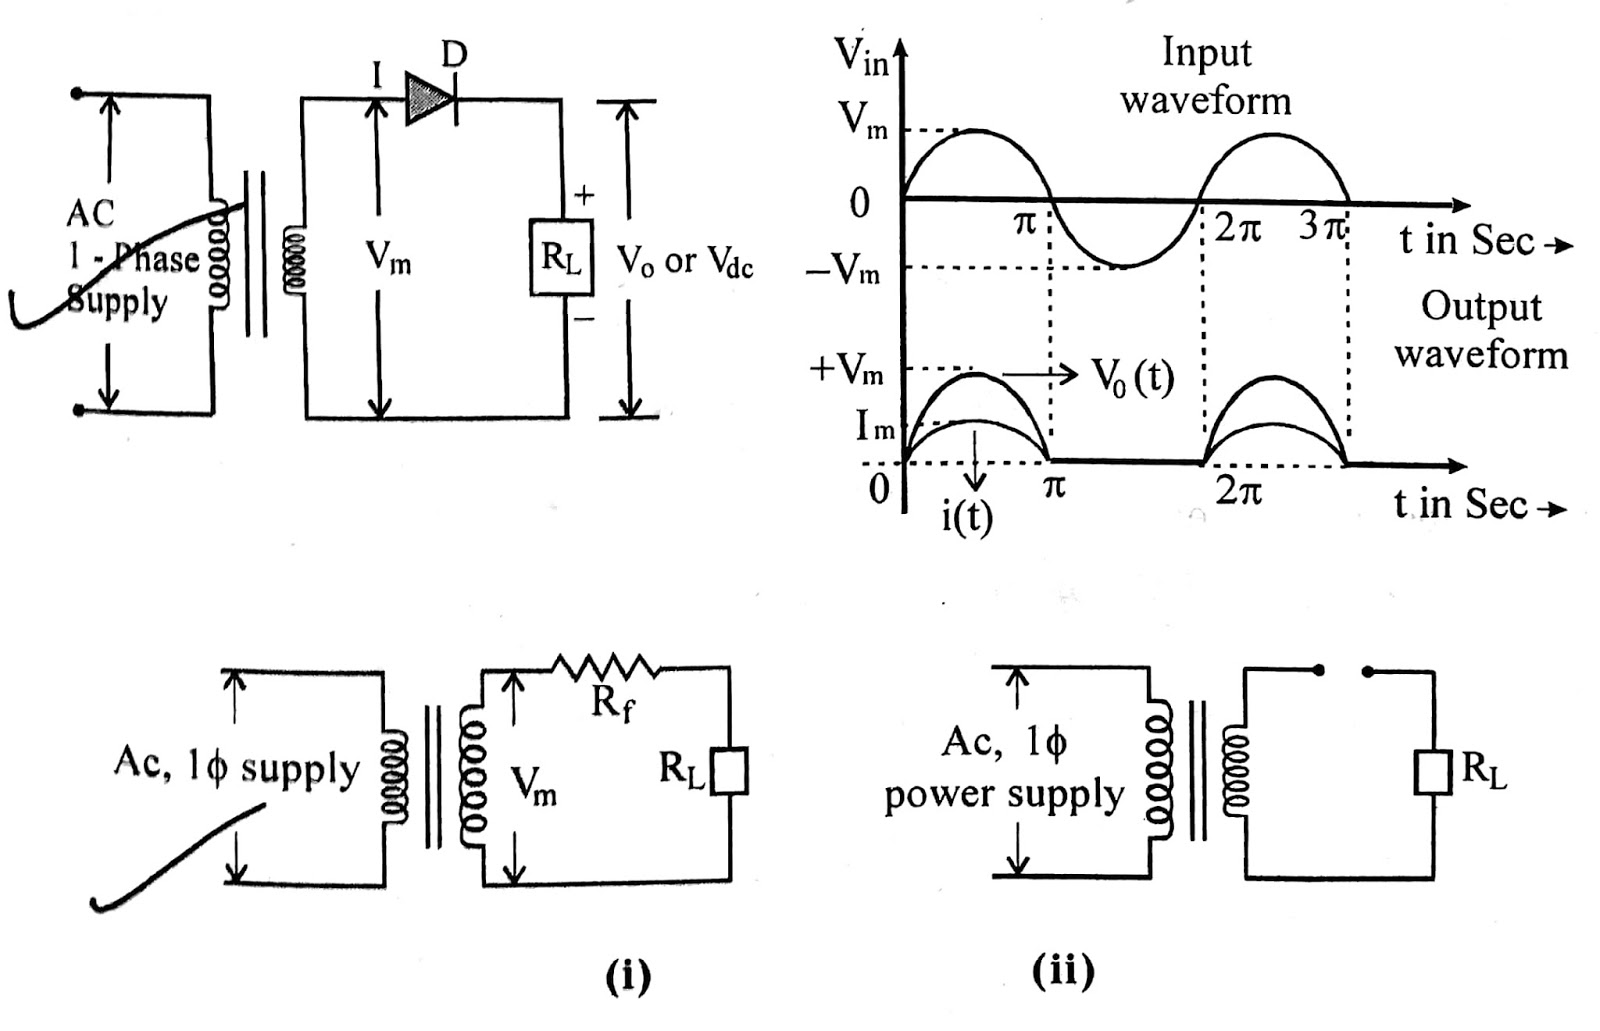 Half Wave Rectifier Circuit Working, Analysis and